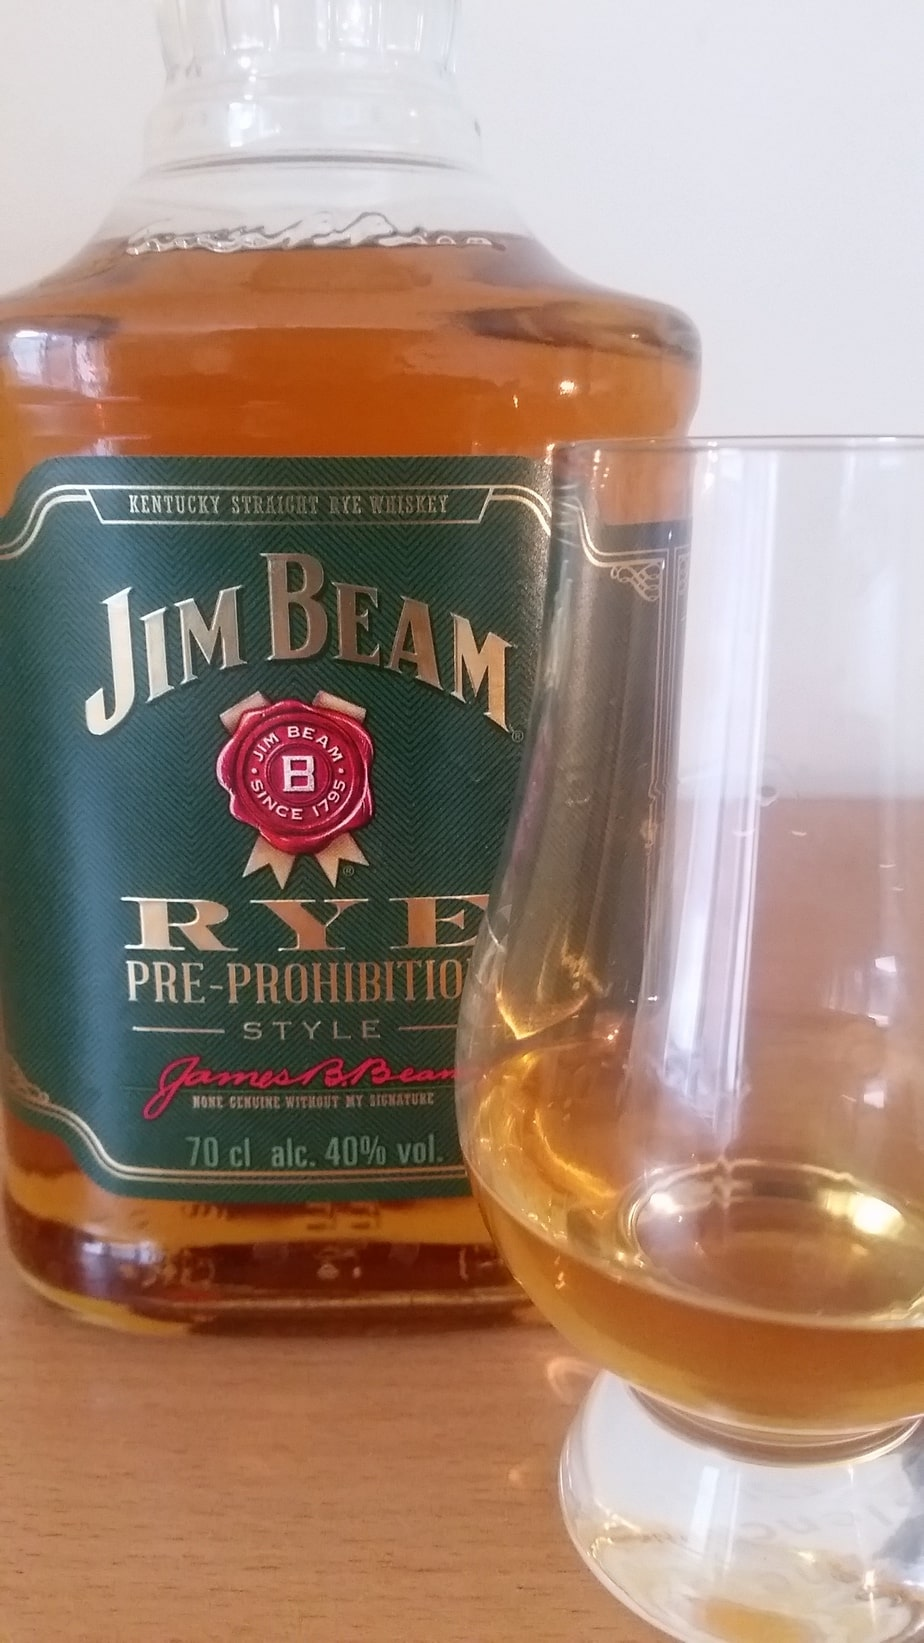 A close up of a bottle and glass of Jim Beam Pre Prohibition Rye